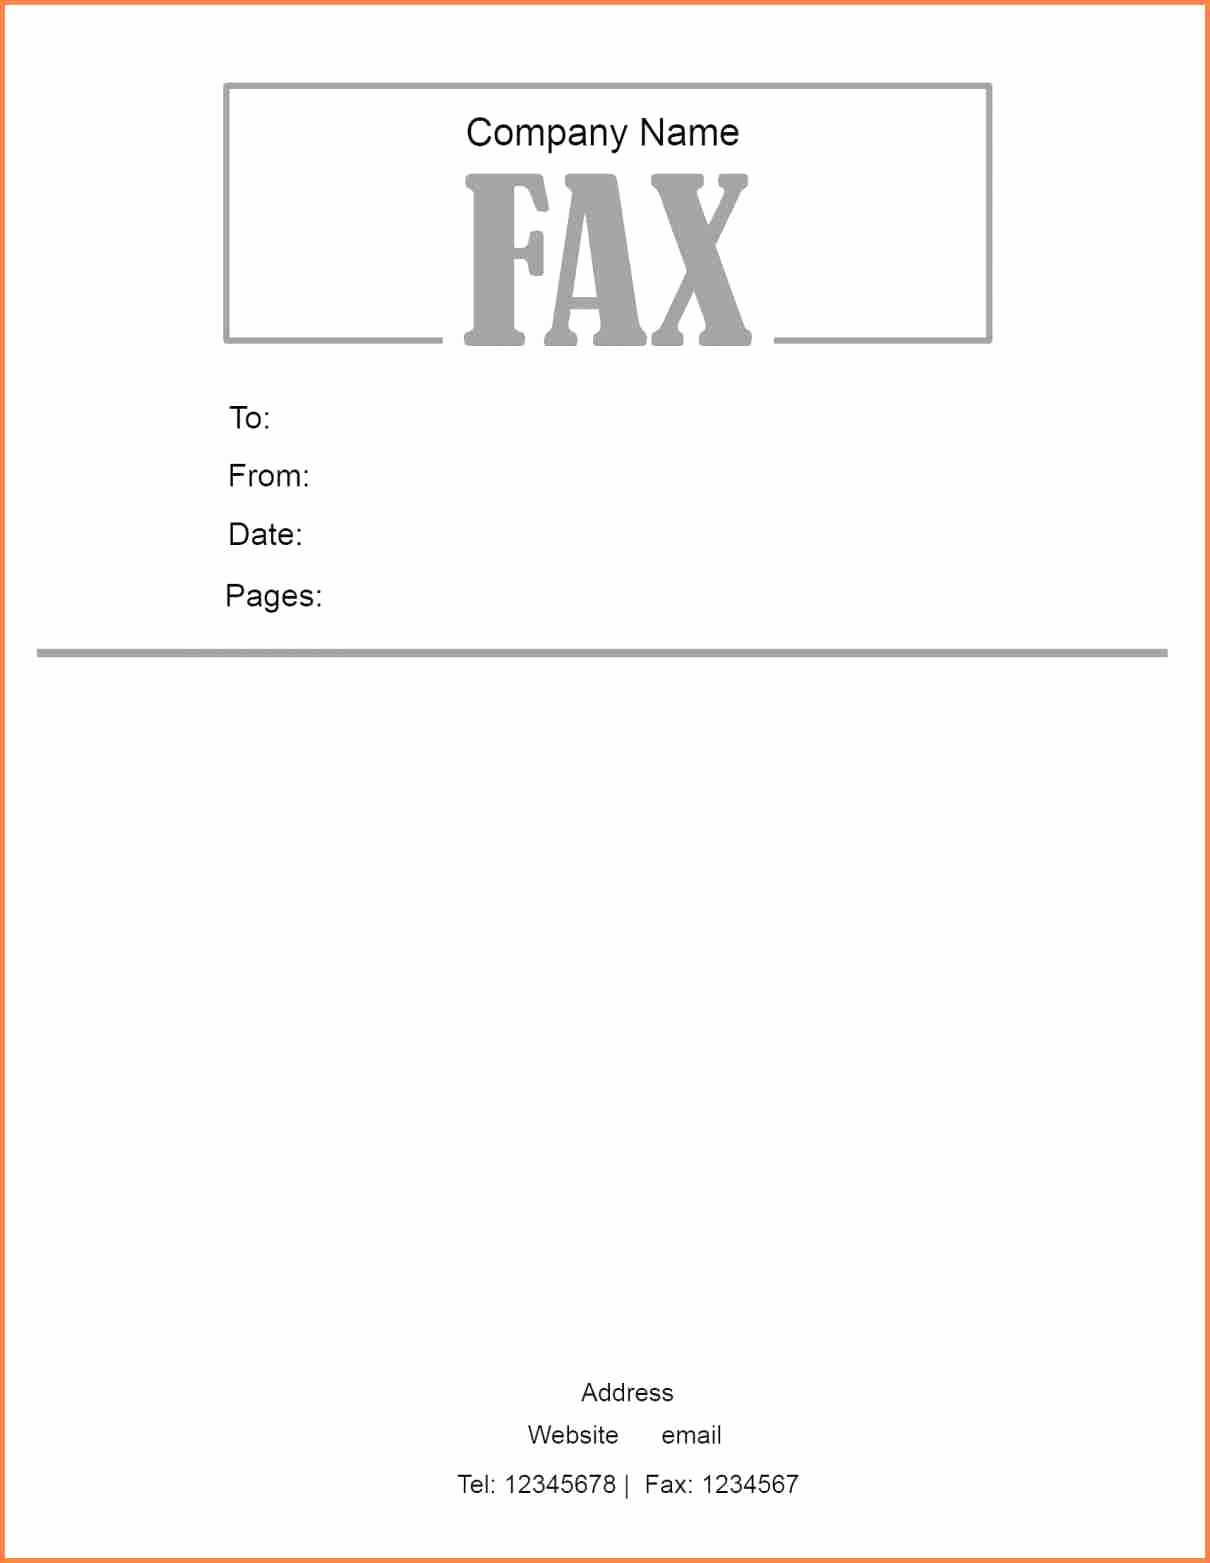 Standard Fax Cover Sheet Pdf New 11 Basic Fax Cover Sheet Pdf